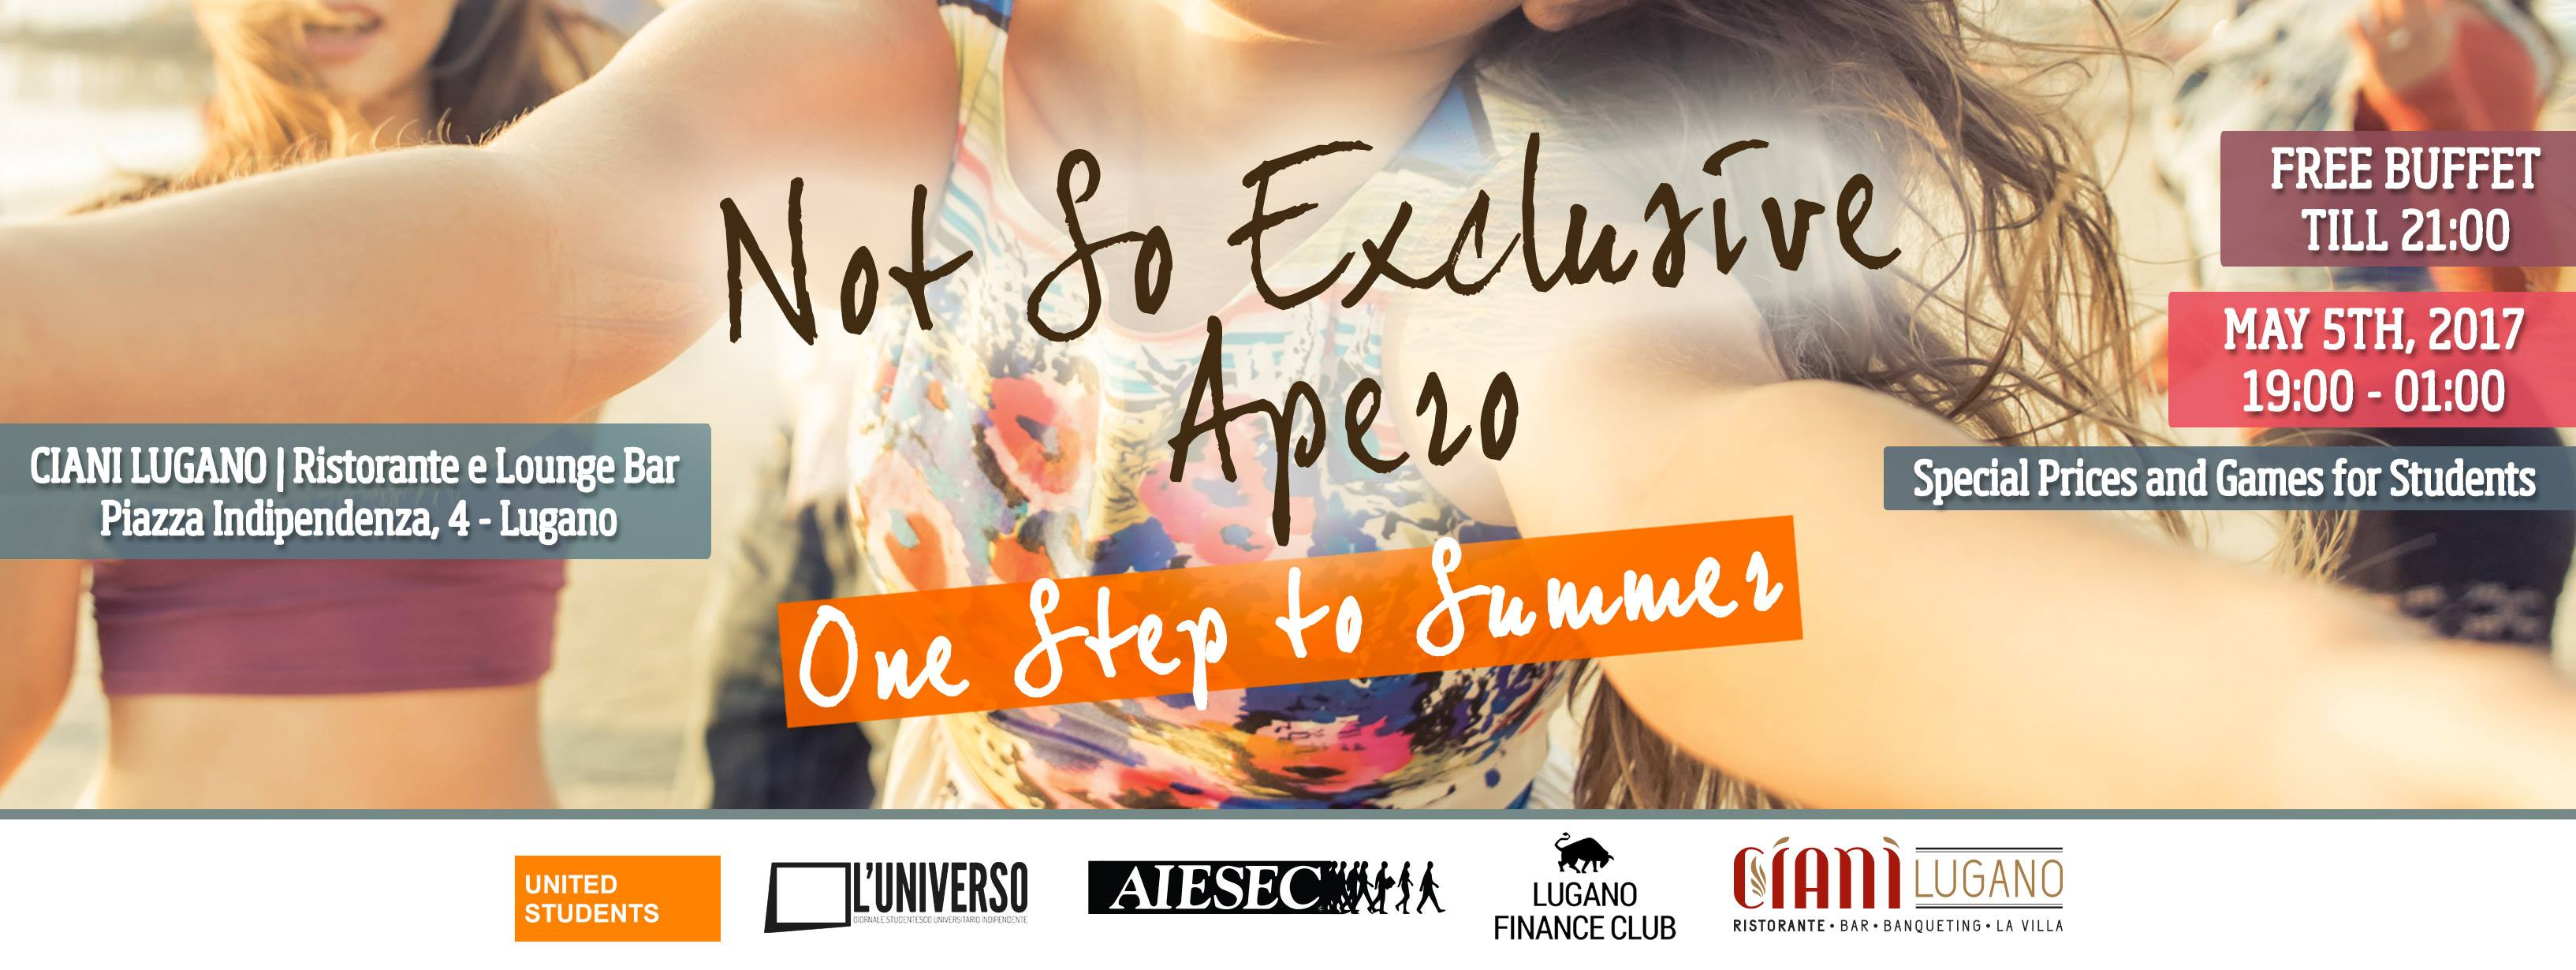 Not So ExclUSIve Apero - One Step To Summer